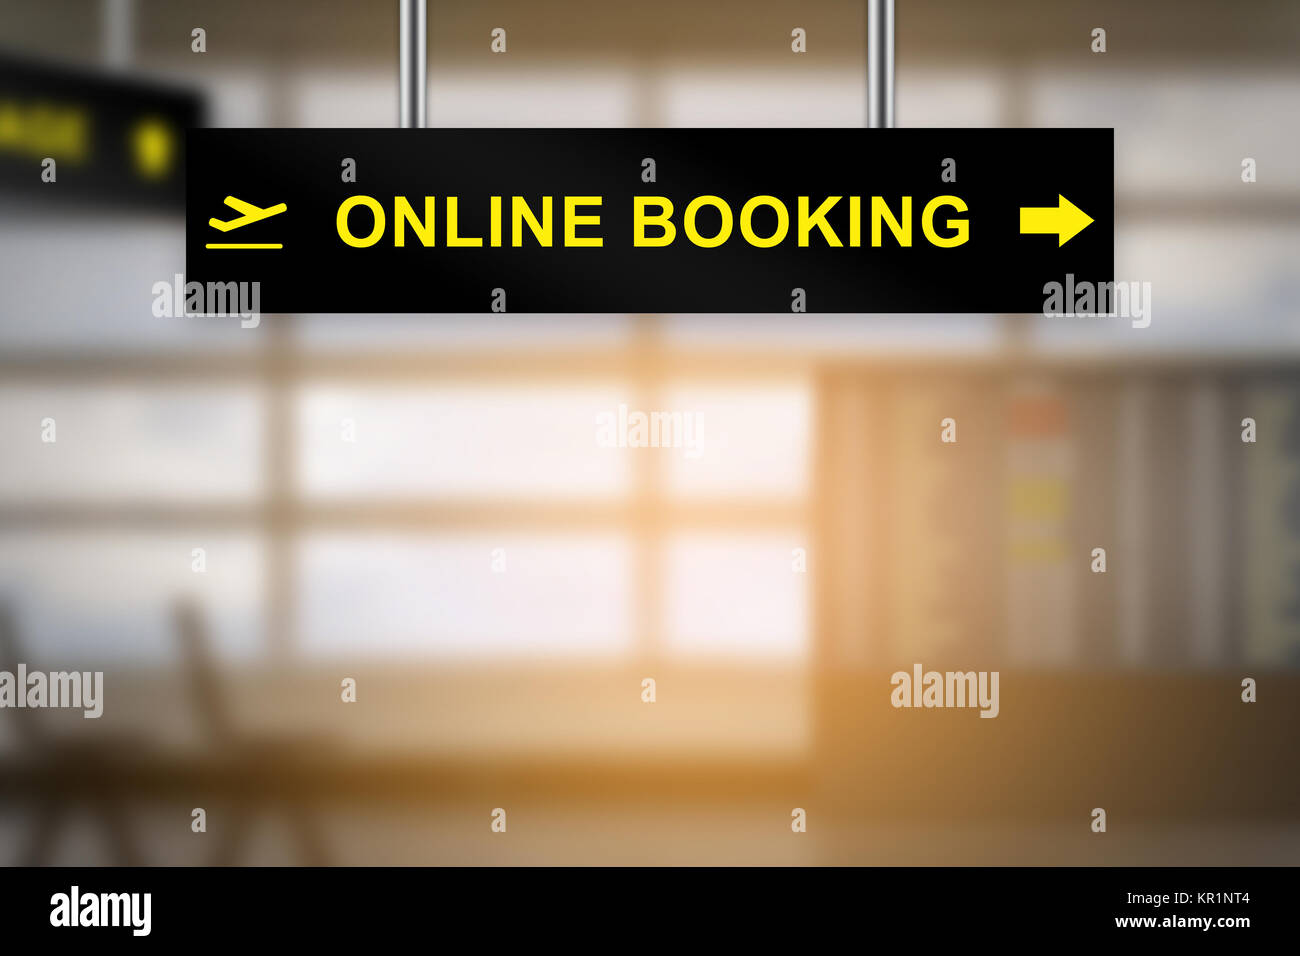 online booking on airport sign board - Stock Image